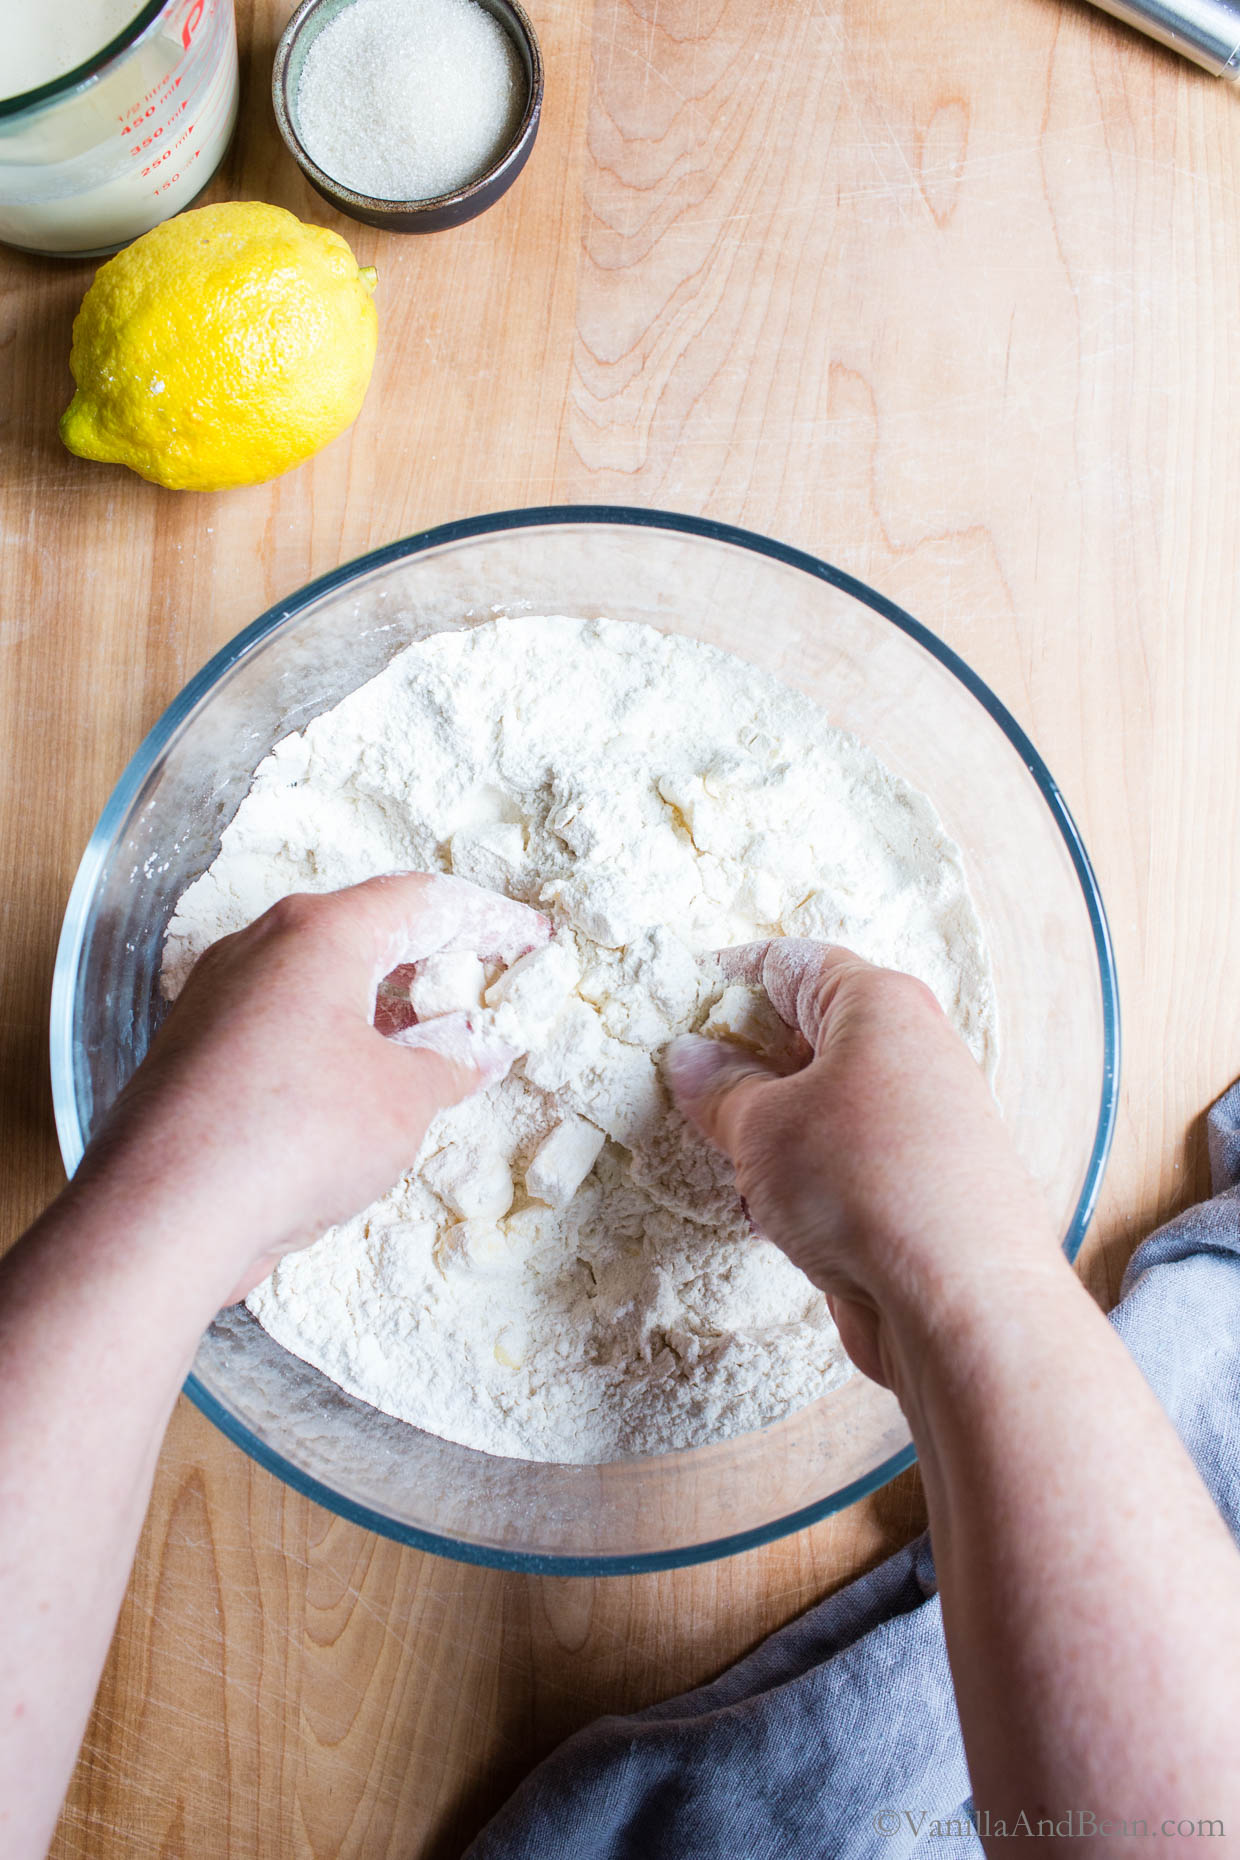 Cutting the butter into the flour using hands.